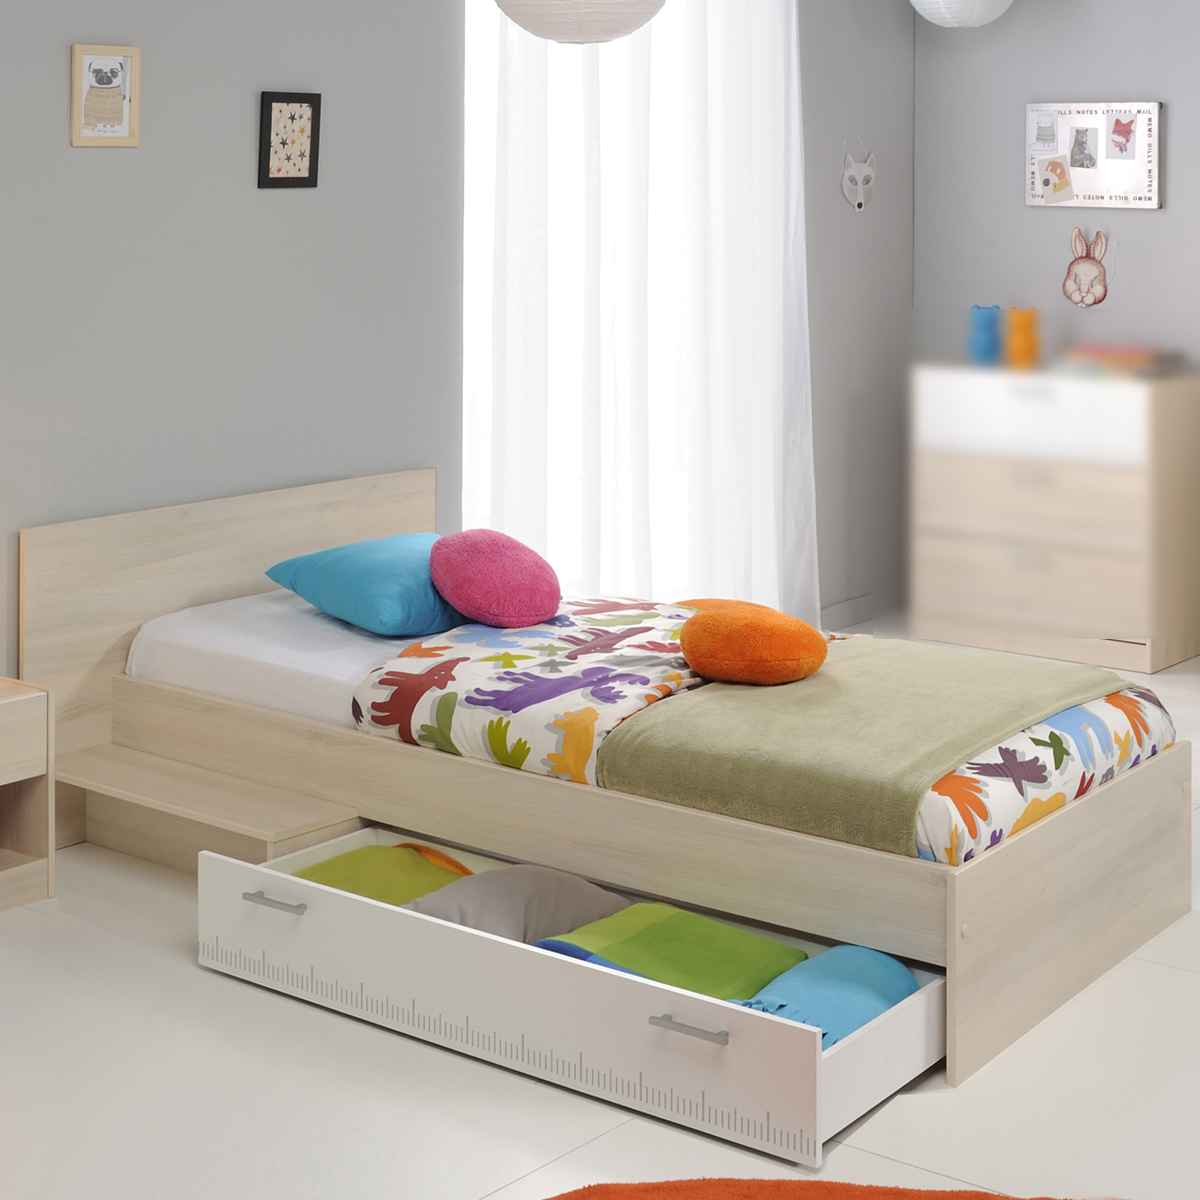 bett charly kinderbett stauraumbett jugendbett in akazie. Black Bedroom Furniture Sets. Home Design Ideas